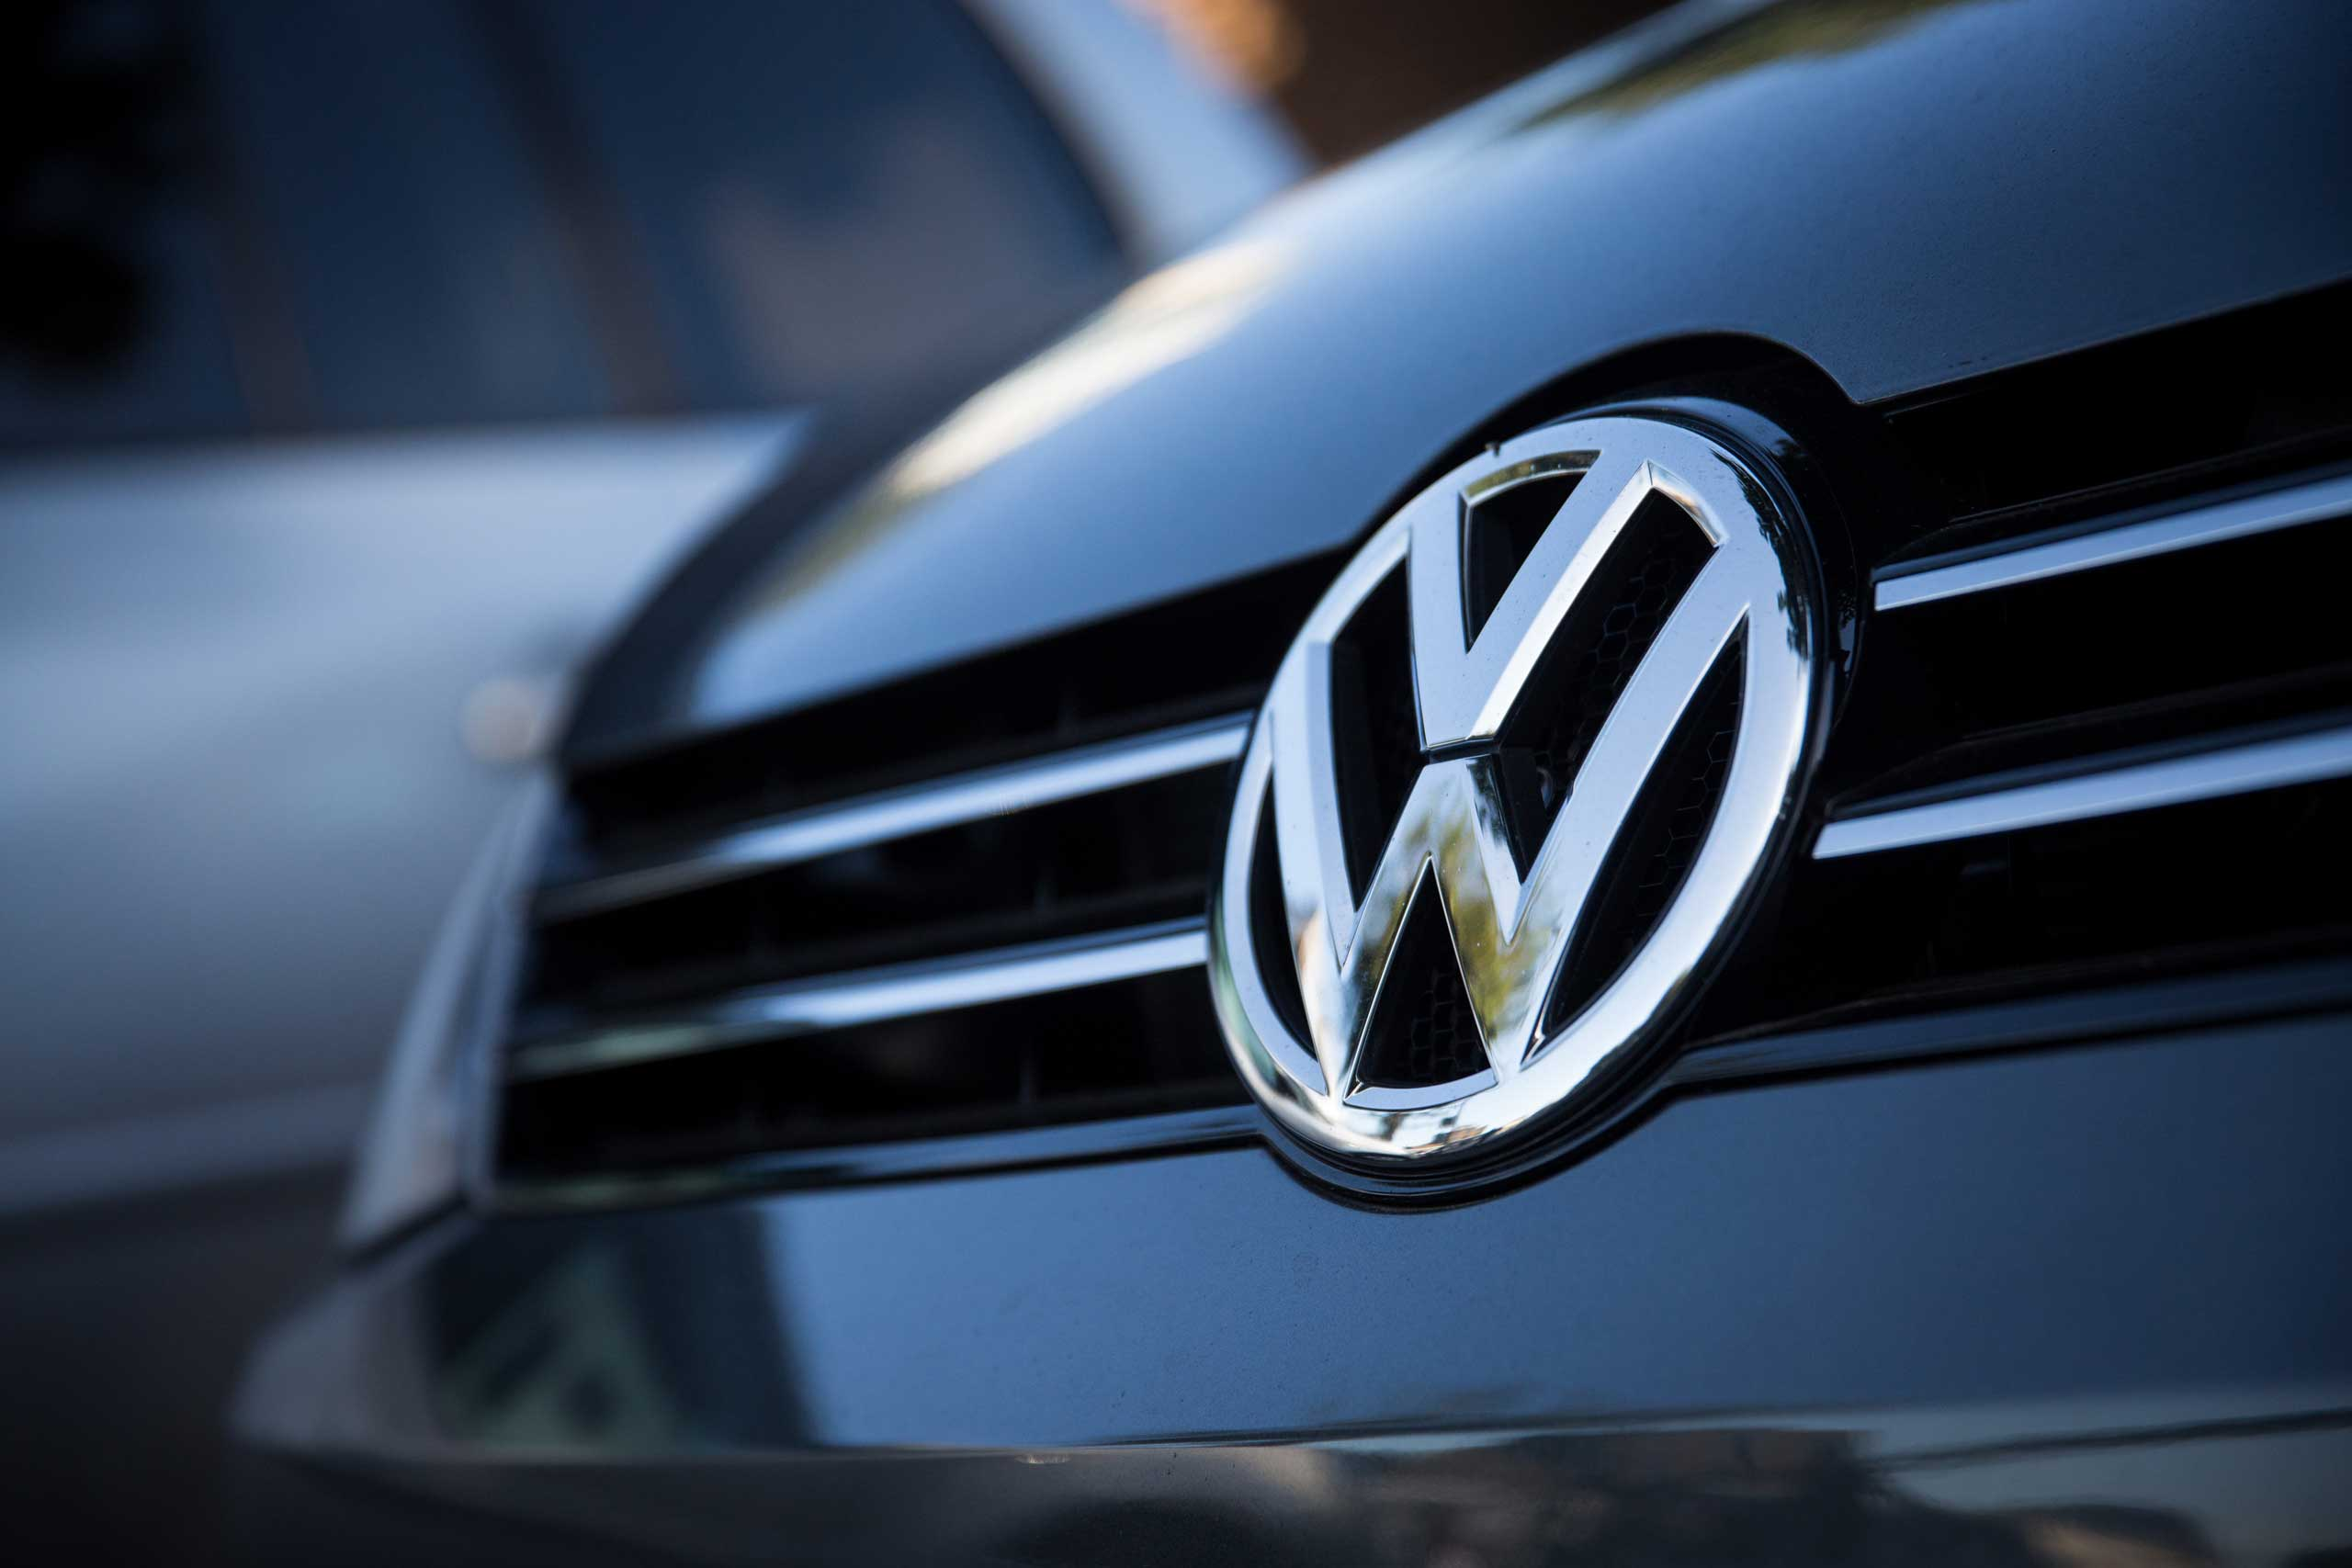 Used cars by German manufacturer Volkswagen are parked at a dealership in London, on Sept. 25, 2015